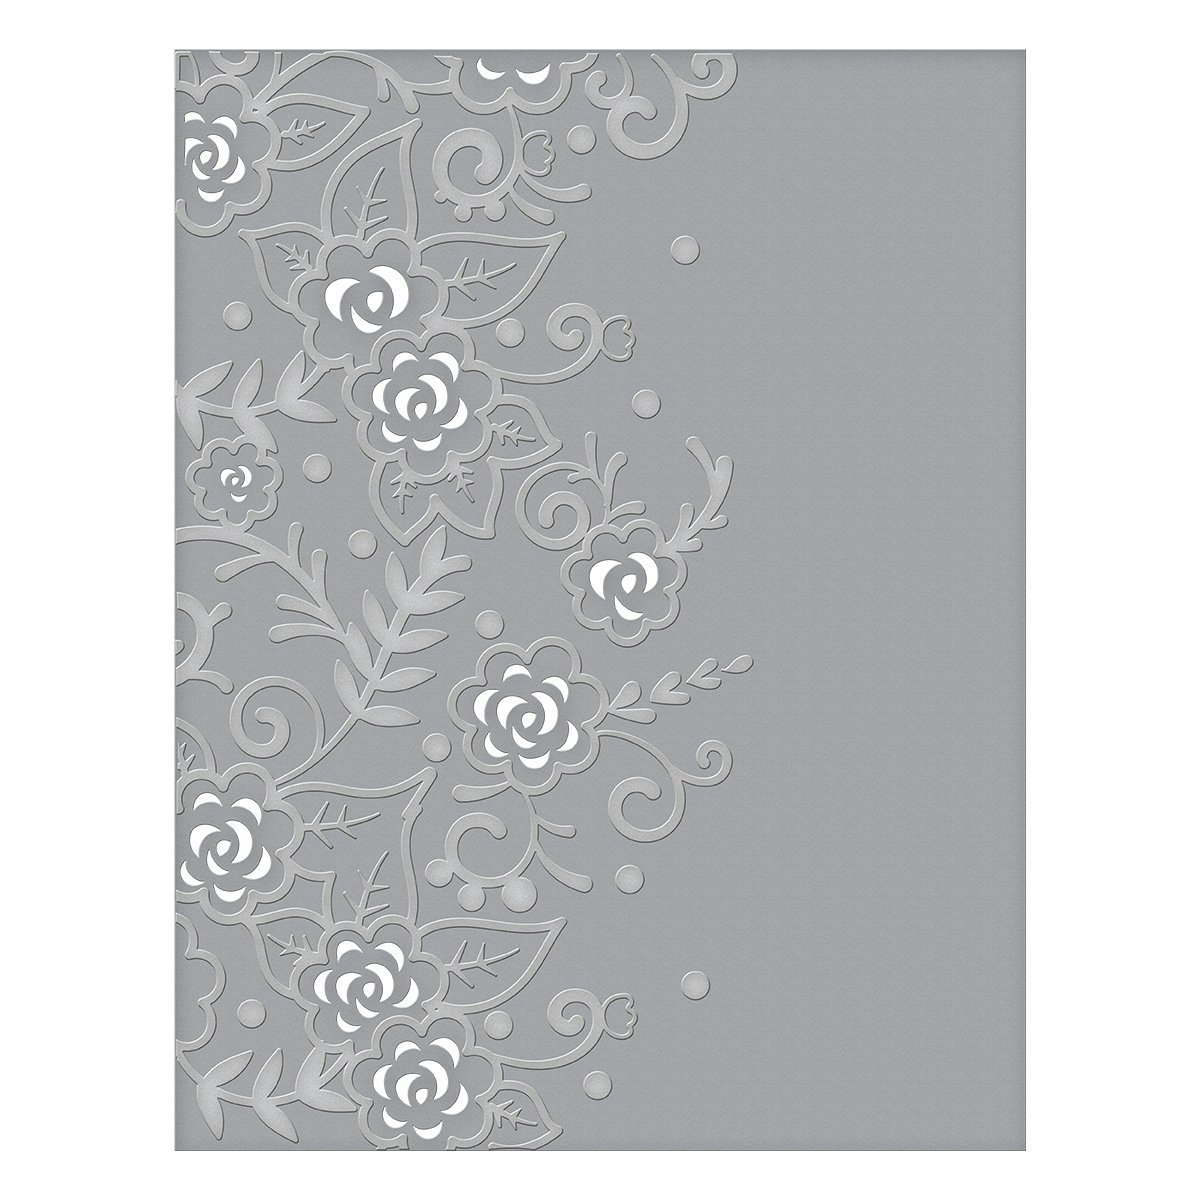 Spellbinders CEF-002 Flower Garden Cut and Emboss Folder, Multi